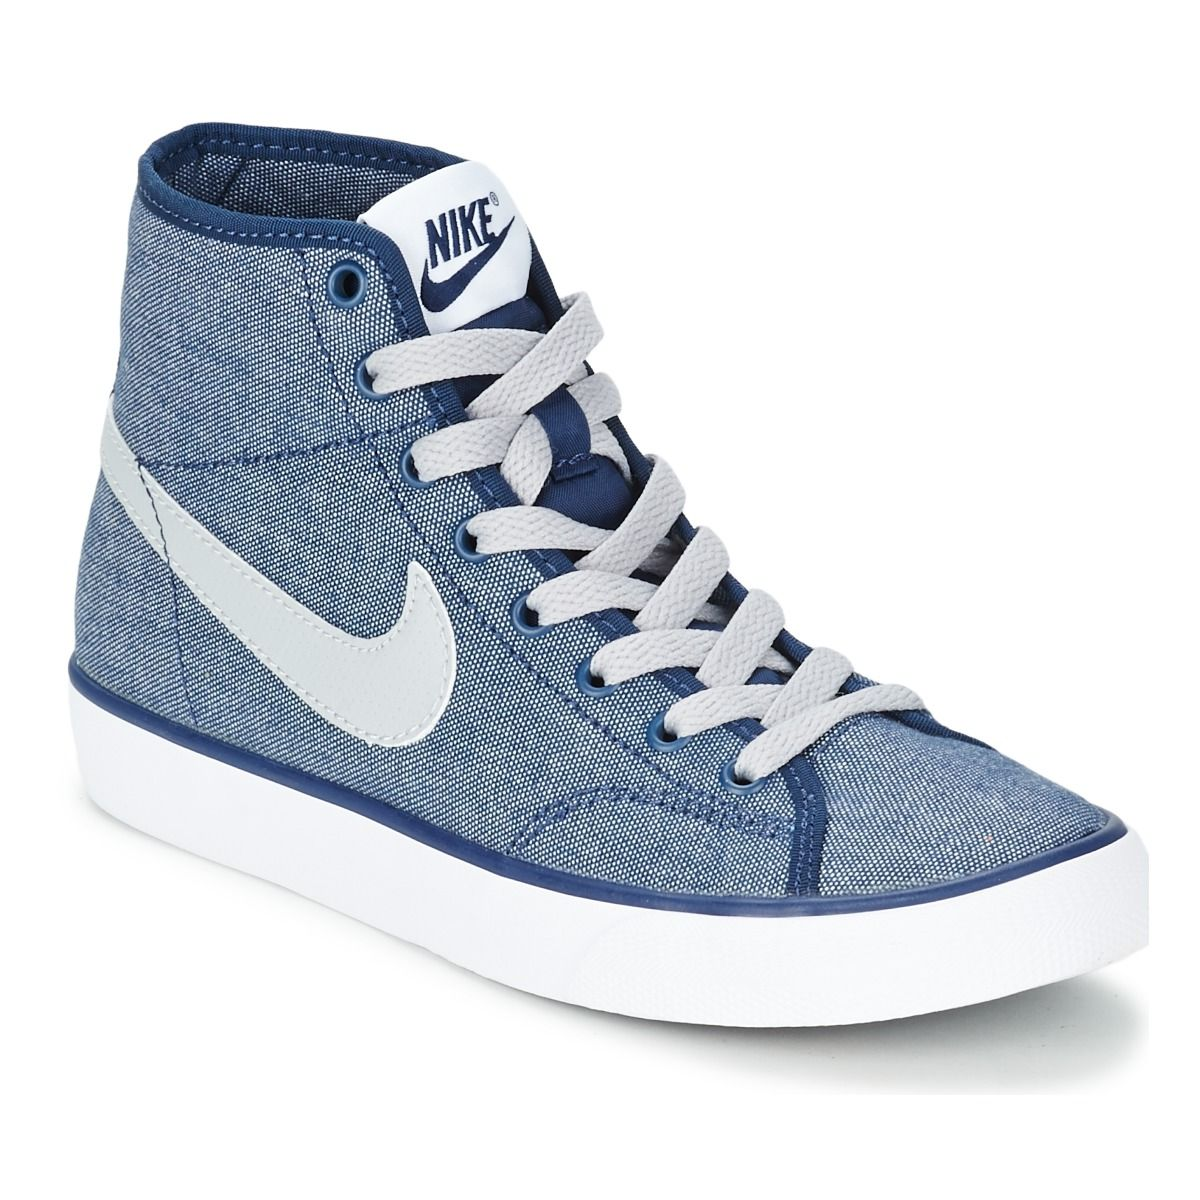 Trends For   Nike Shoes For Girls High Tops Black And White  5d2999c8df